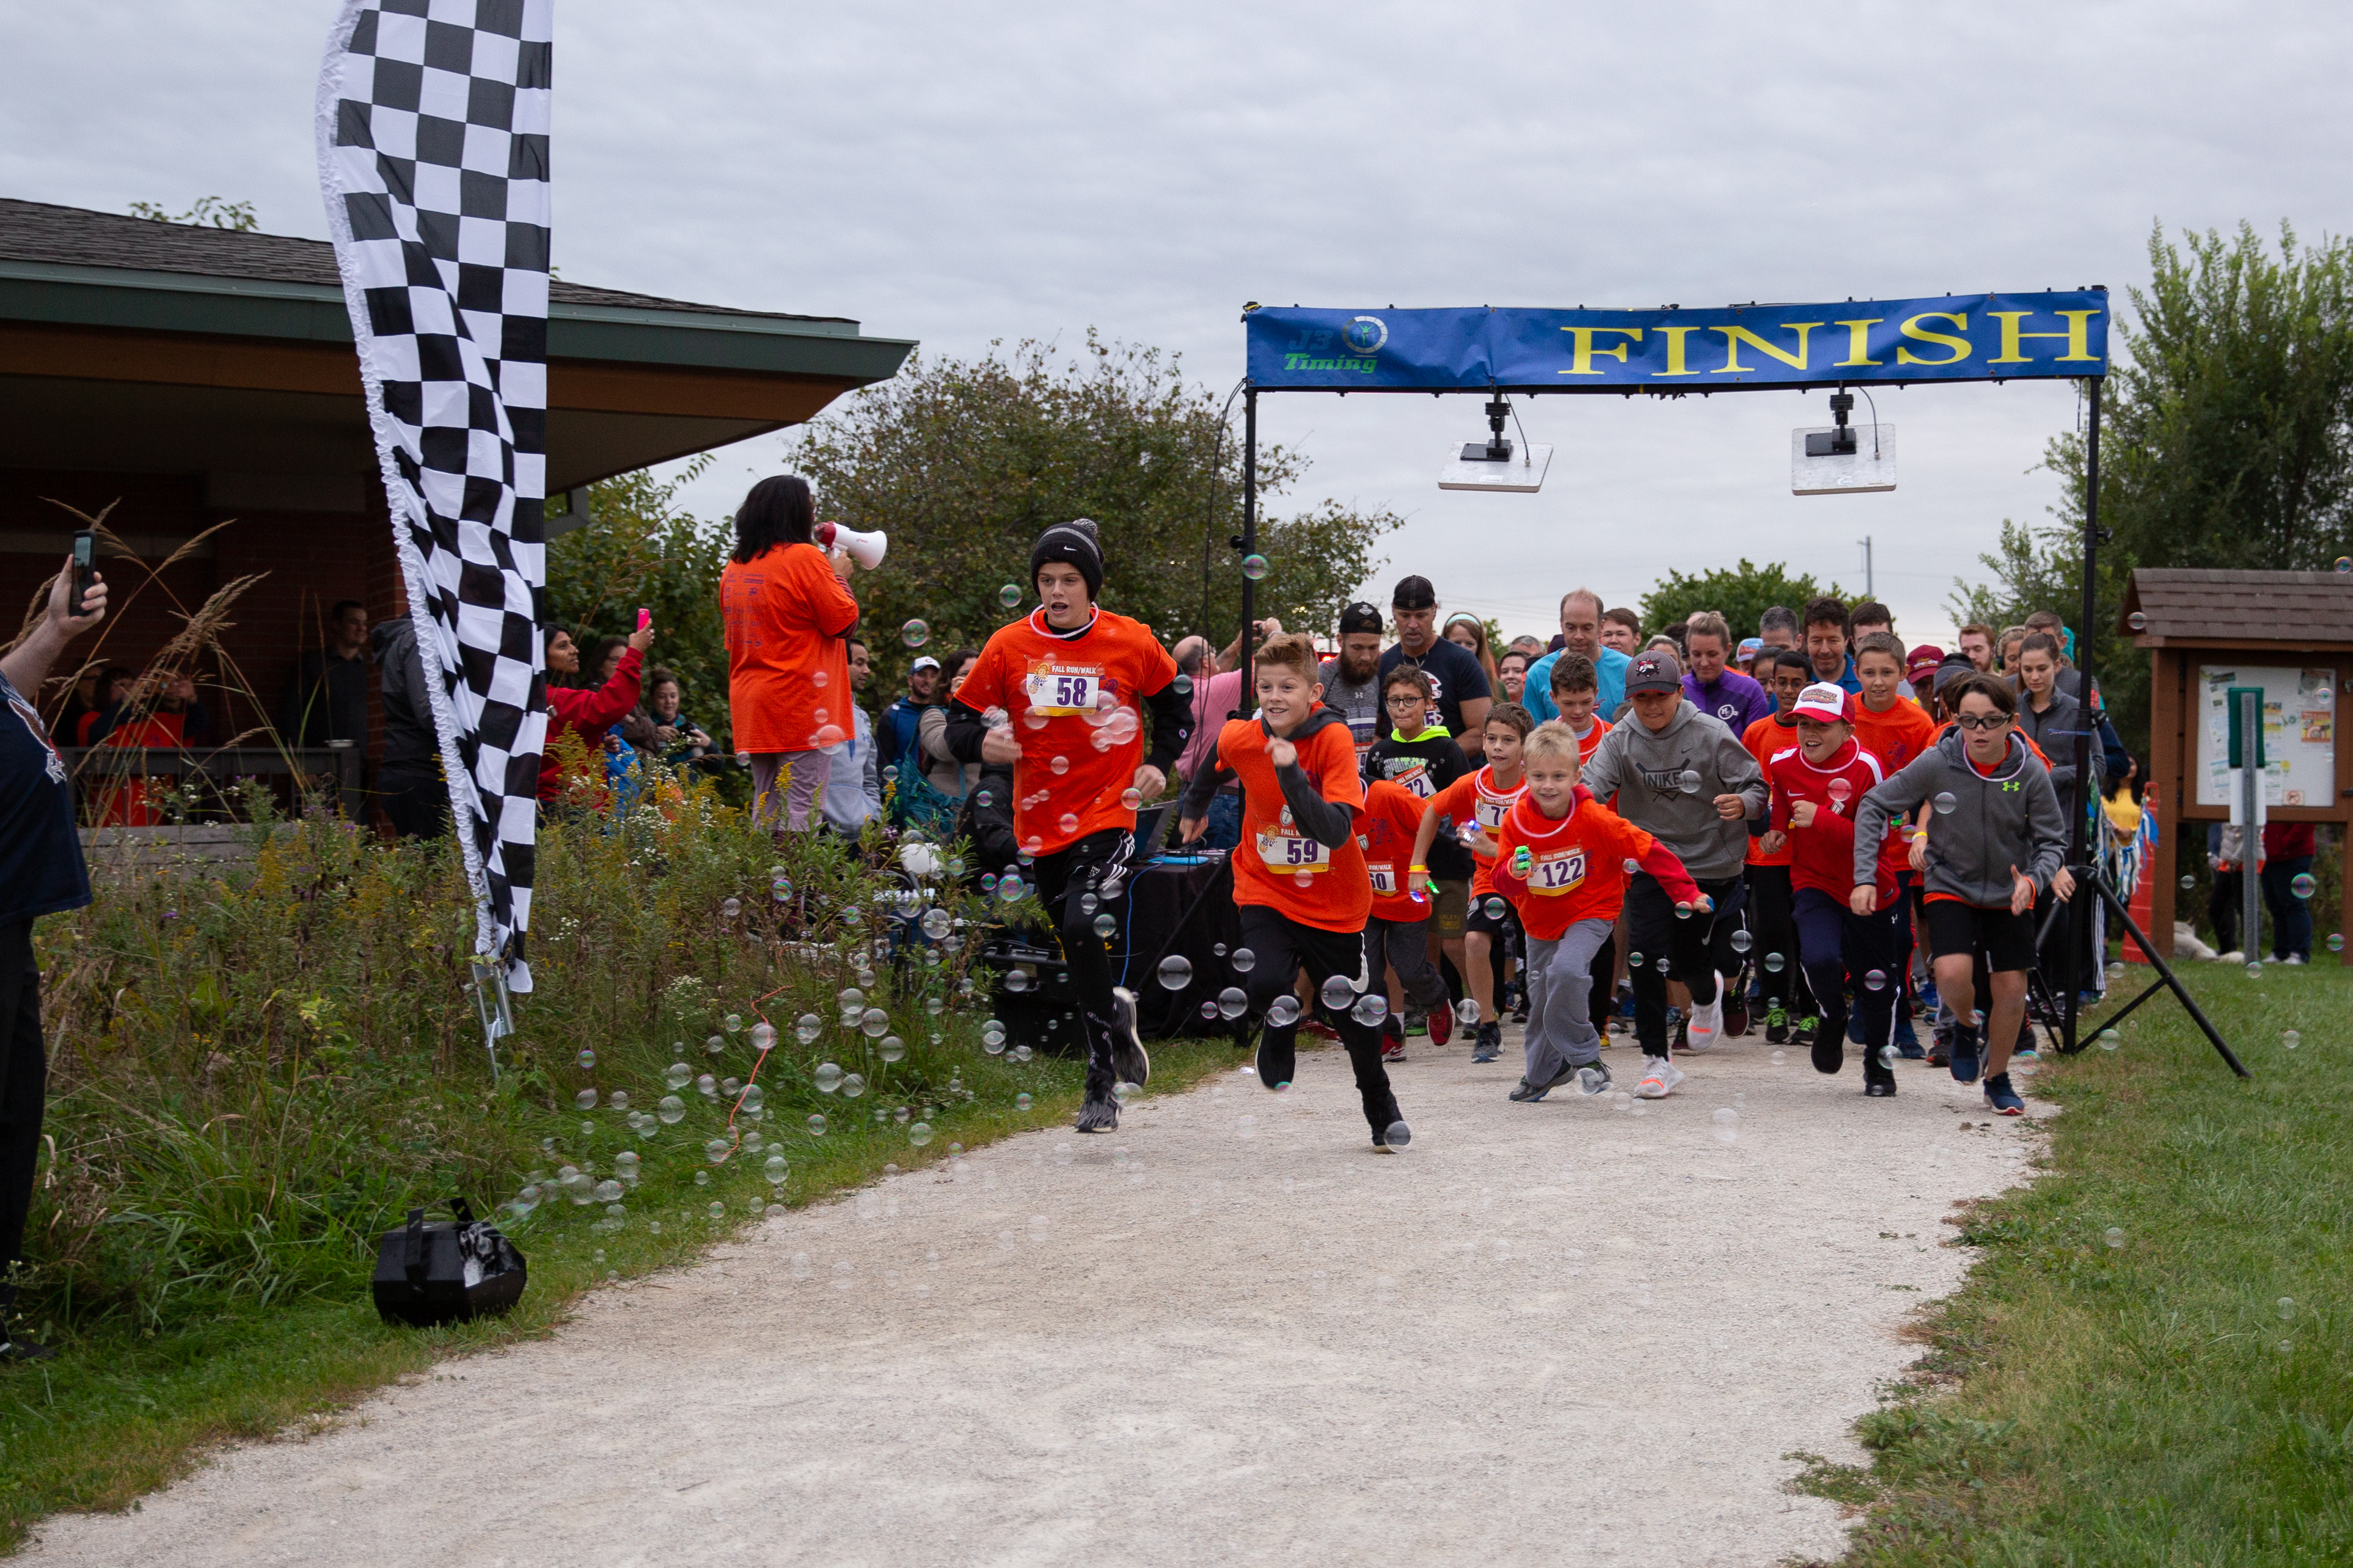 Check Out Photos From the Fall 5K Run/Walk